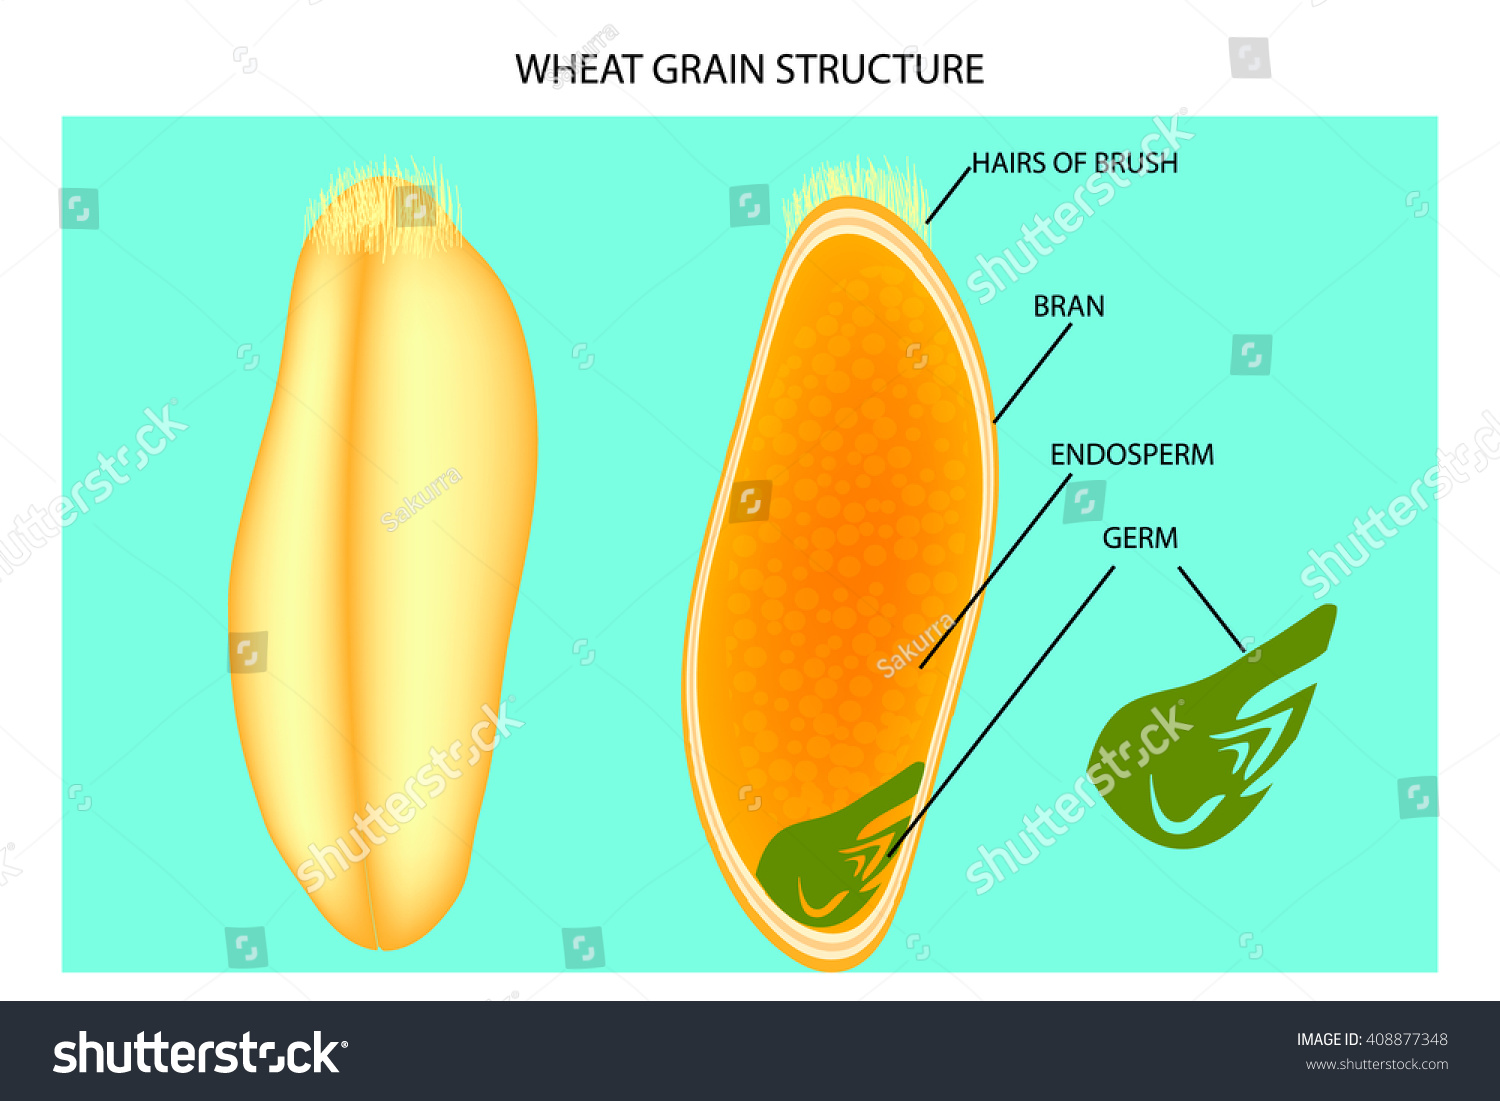 Wheat Grain Structure Stock Vector (Royalty Free) 408877348 ...